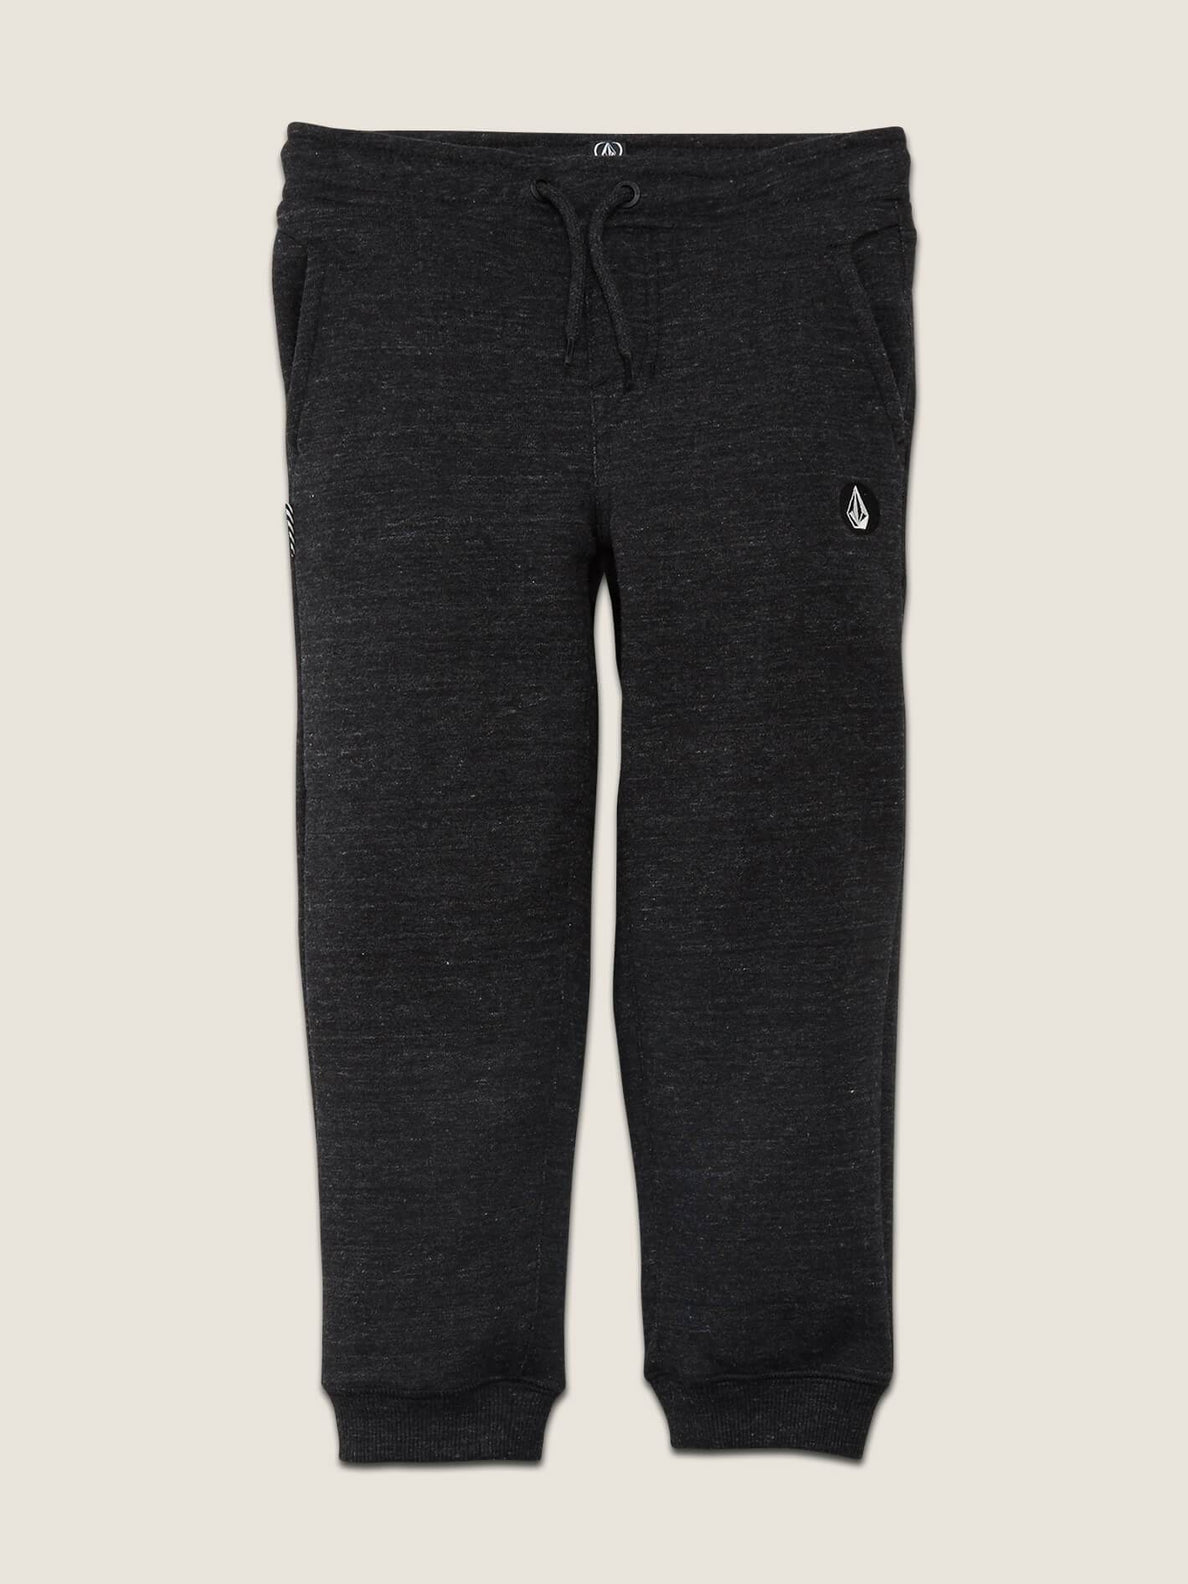 Little Boys Single Stone Fleece Pants In Sulfur Black, Front View